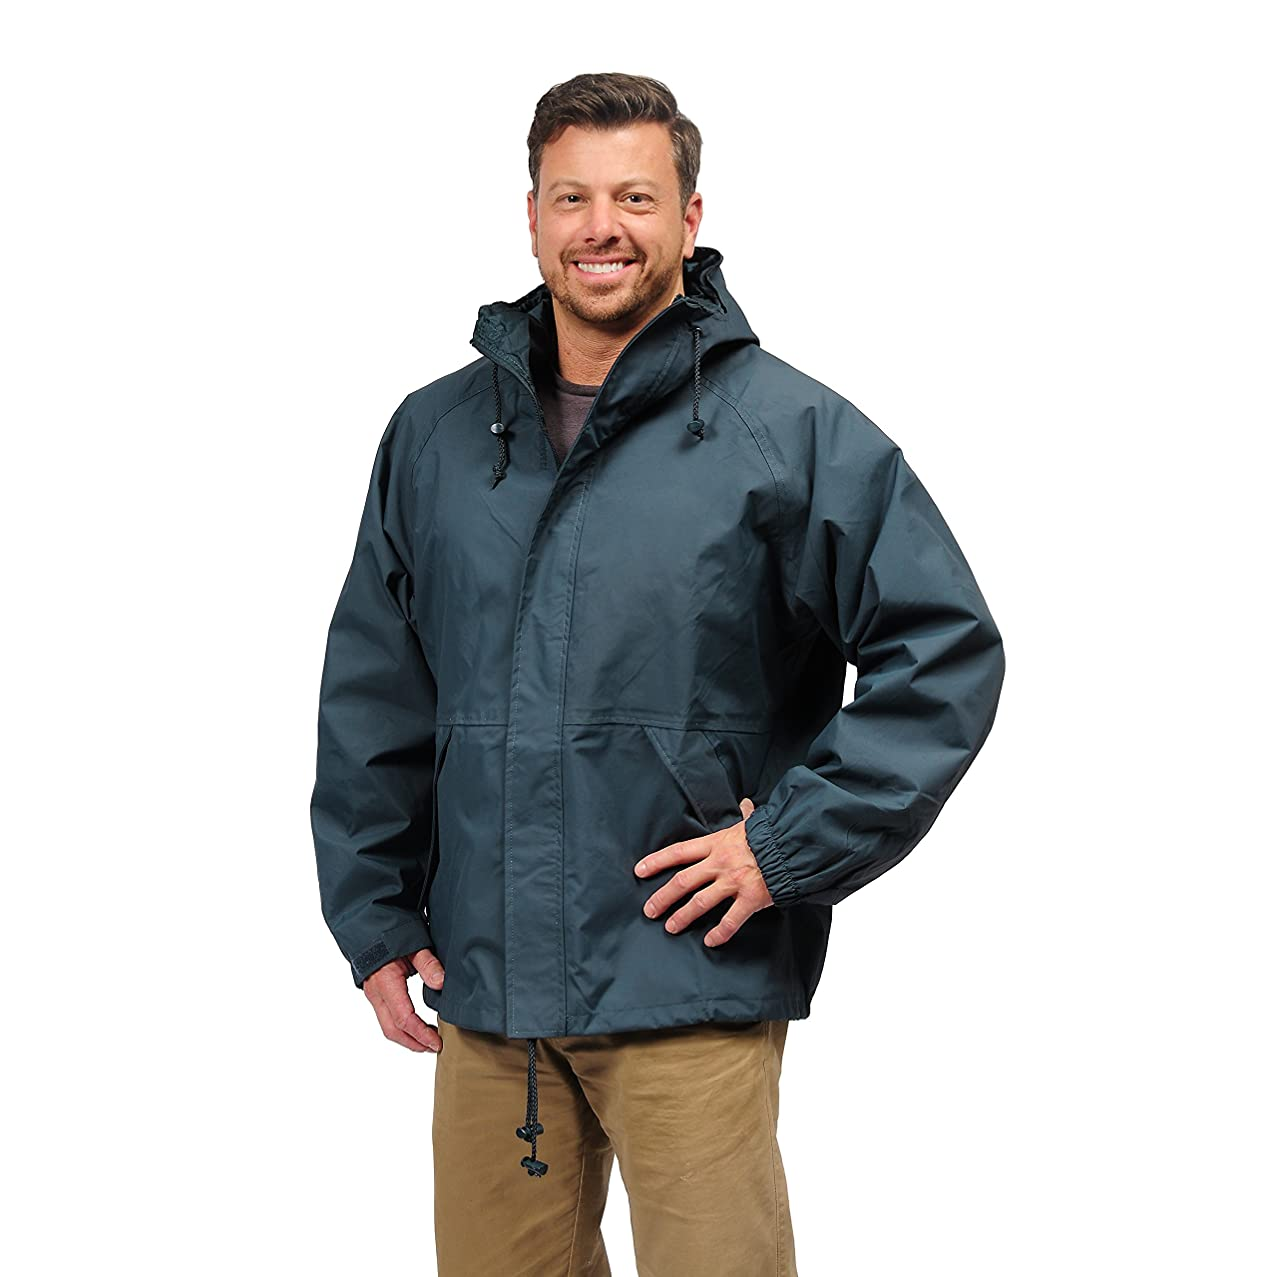 Galeton 7991-XL-SLT Repel Rainwear Breathable Durable Waterproof Rain Jacket, XL, Slate